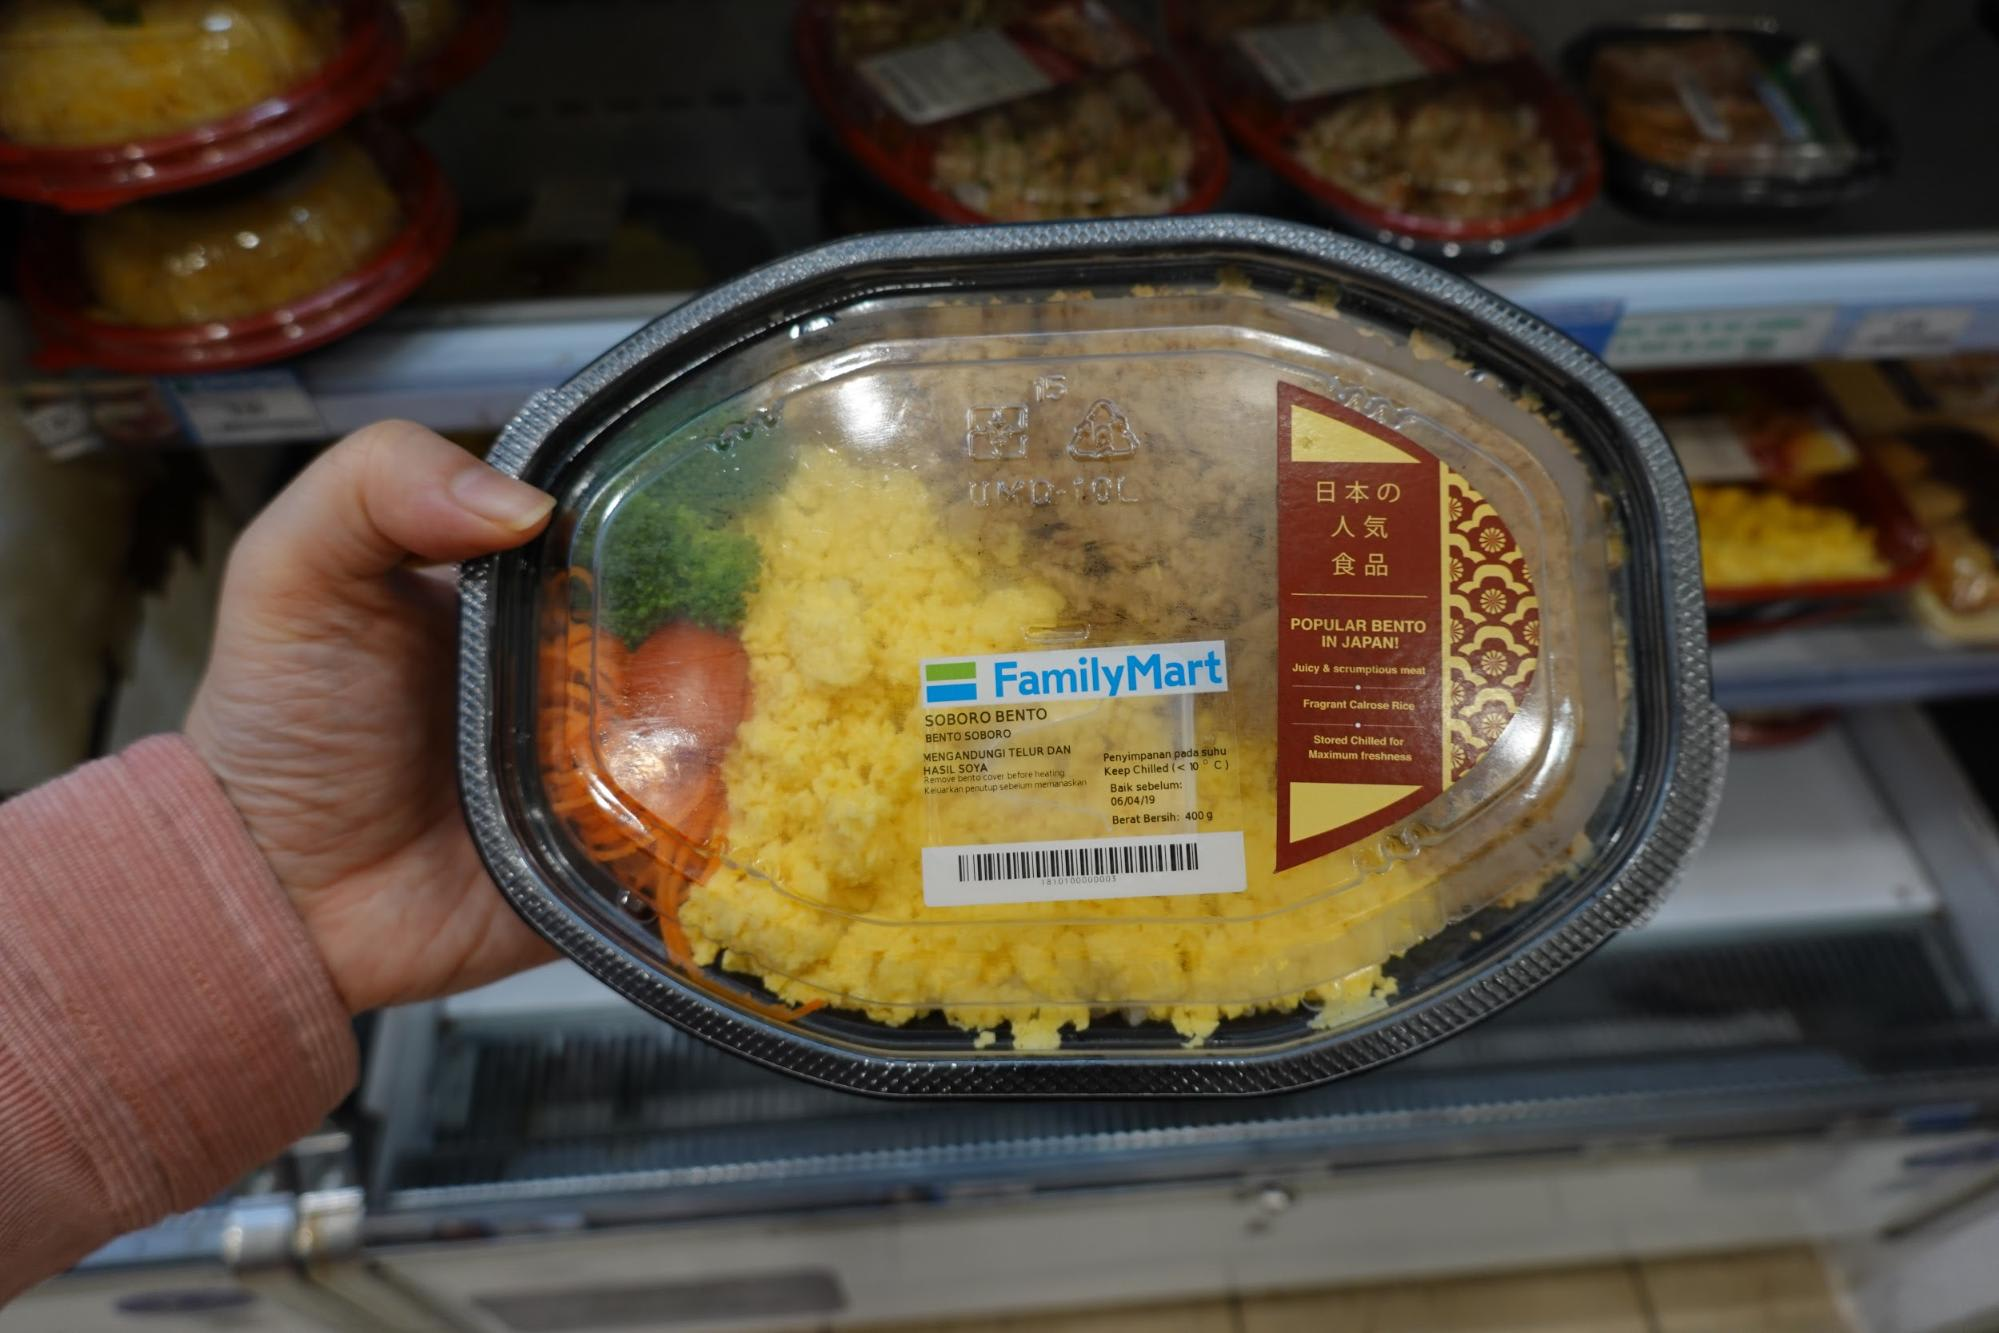 18 Must-Buy Food Items From FamilyMart Malaysia - Klook Blog